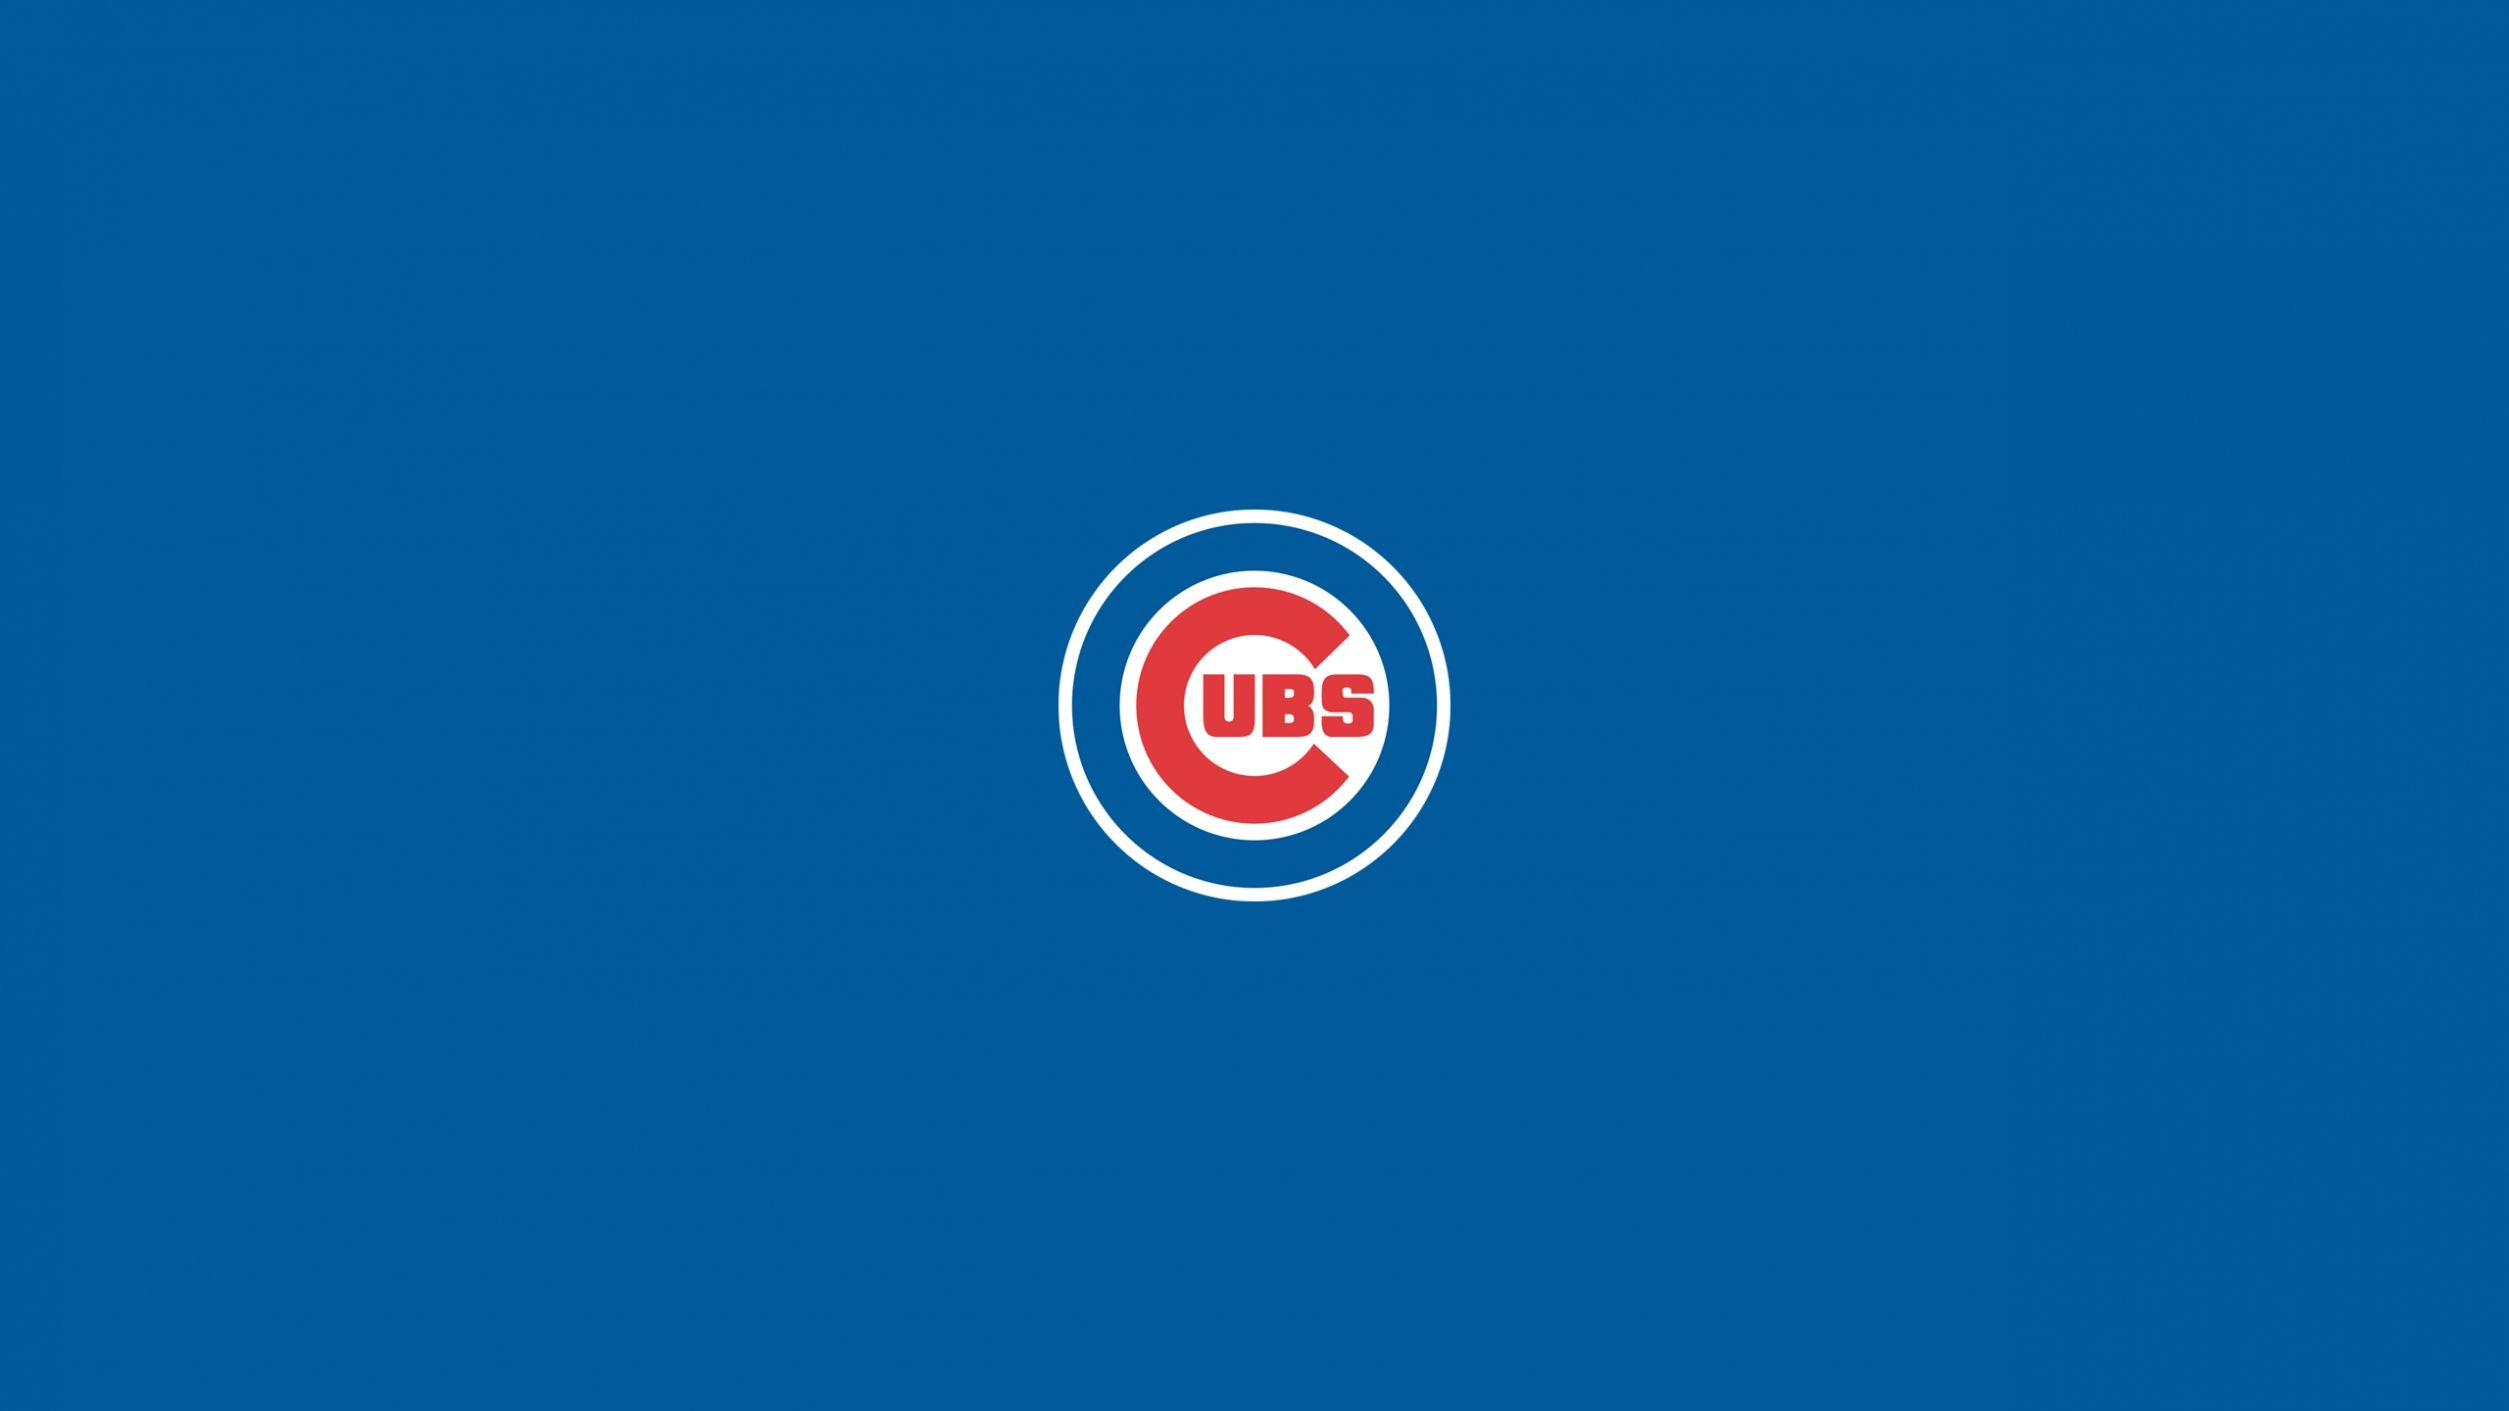 "1280x1024 Chicago Cubs Full HD Quality Backgrounds, Chicago Cubs Wallpapers ..."">"